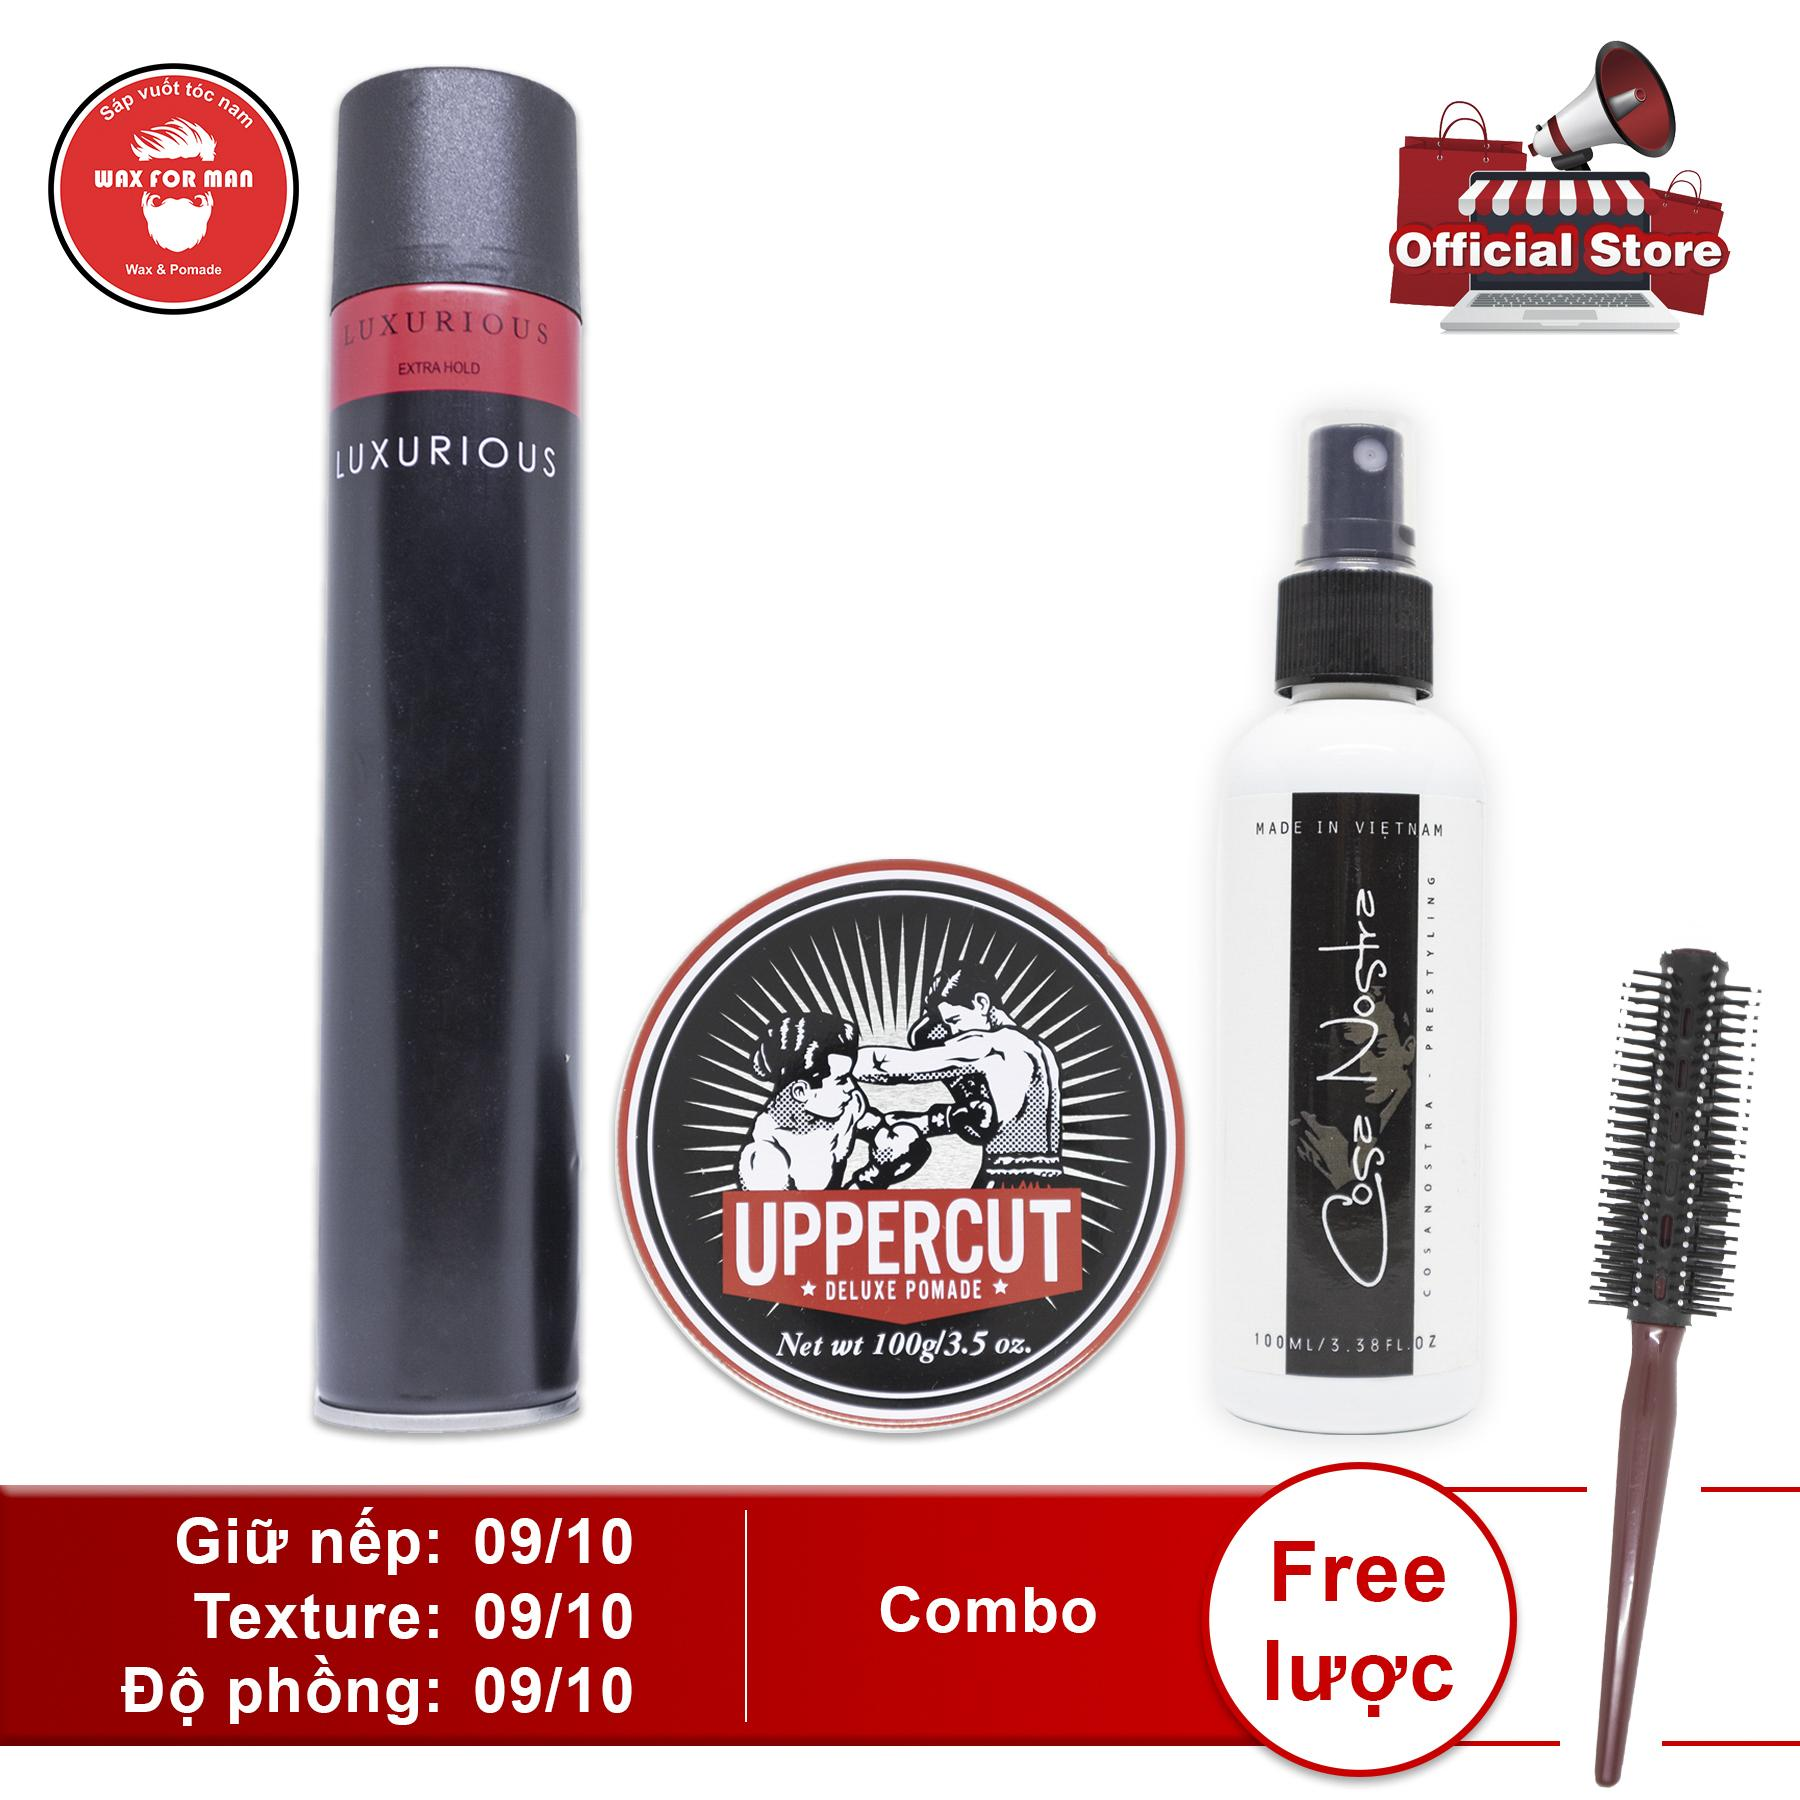 Sáp vuốt tóc Uppercut Deluxe Pomade + Cosa Nostra pre-styling + gôm Luxurious